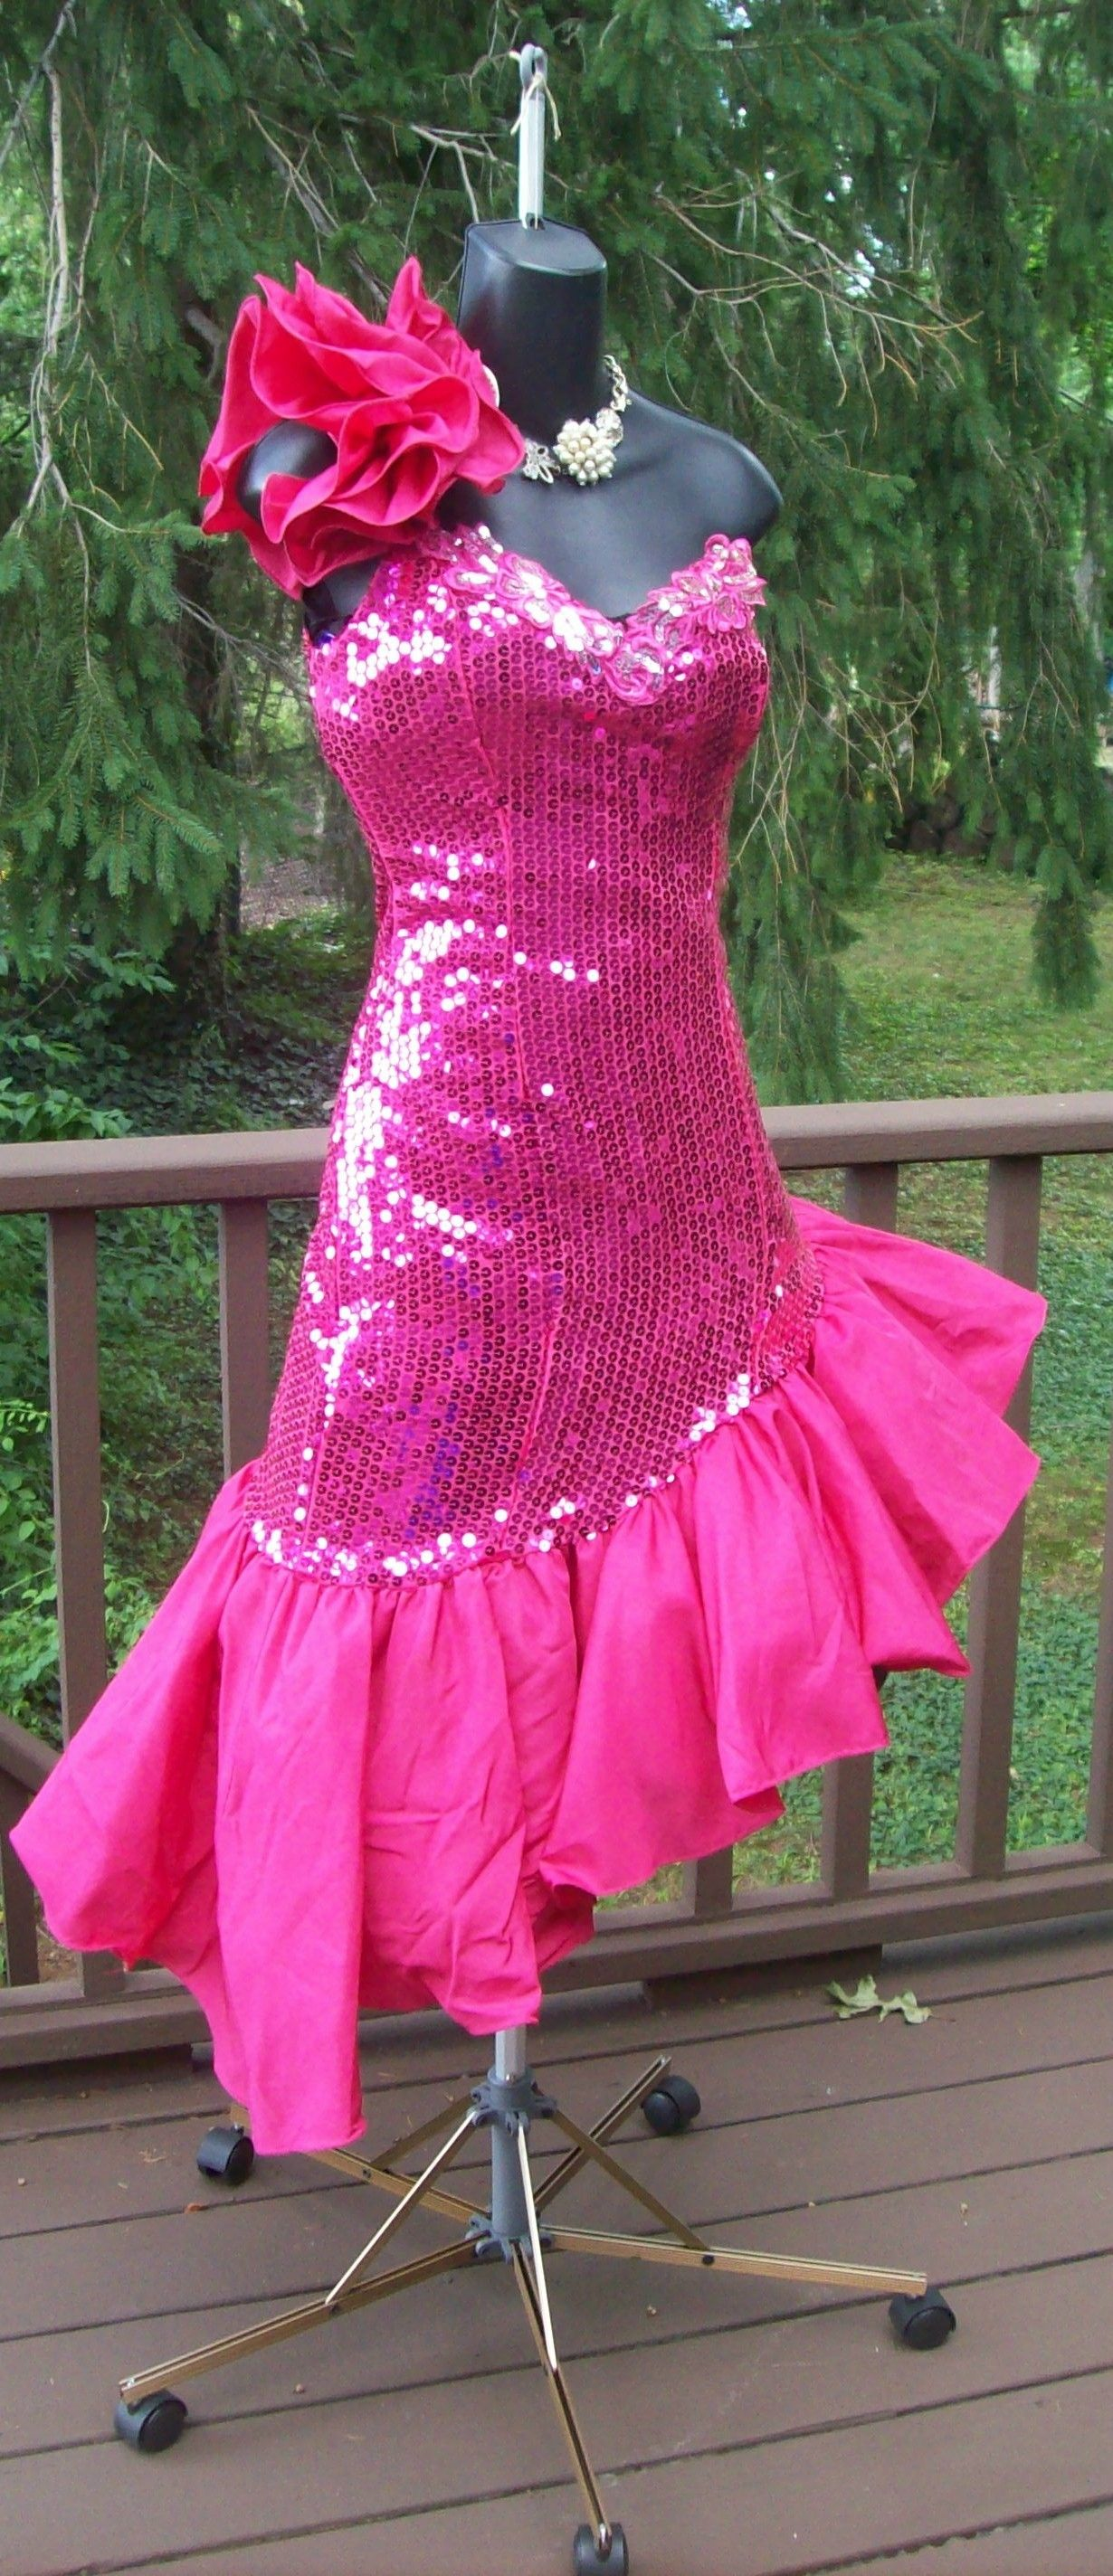 Authentic 80s prom party dress total wild child glam!!~~~~ come see ...